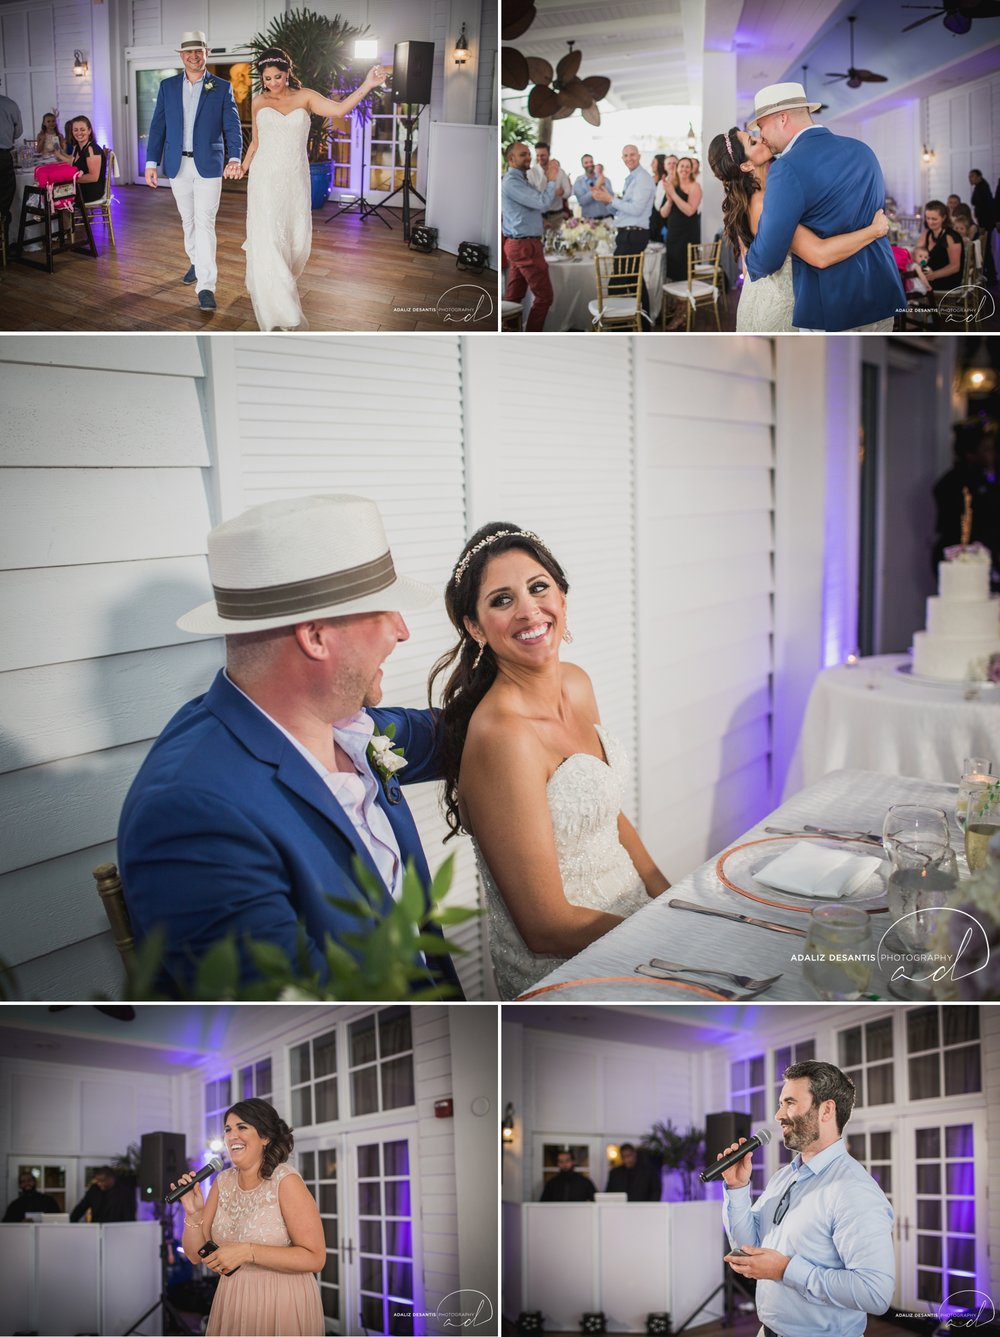 Carmen Alex palms hotel spa miami beach destination wedding lavender roses cuban cigar England cuba bride rose gold elegant Maggie Sottero Badgley Mischka 19.jpg